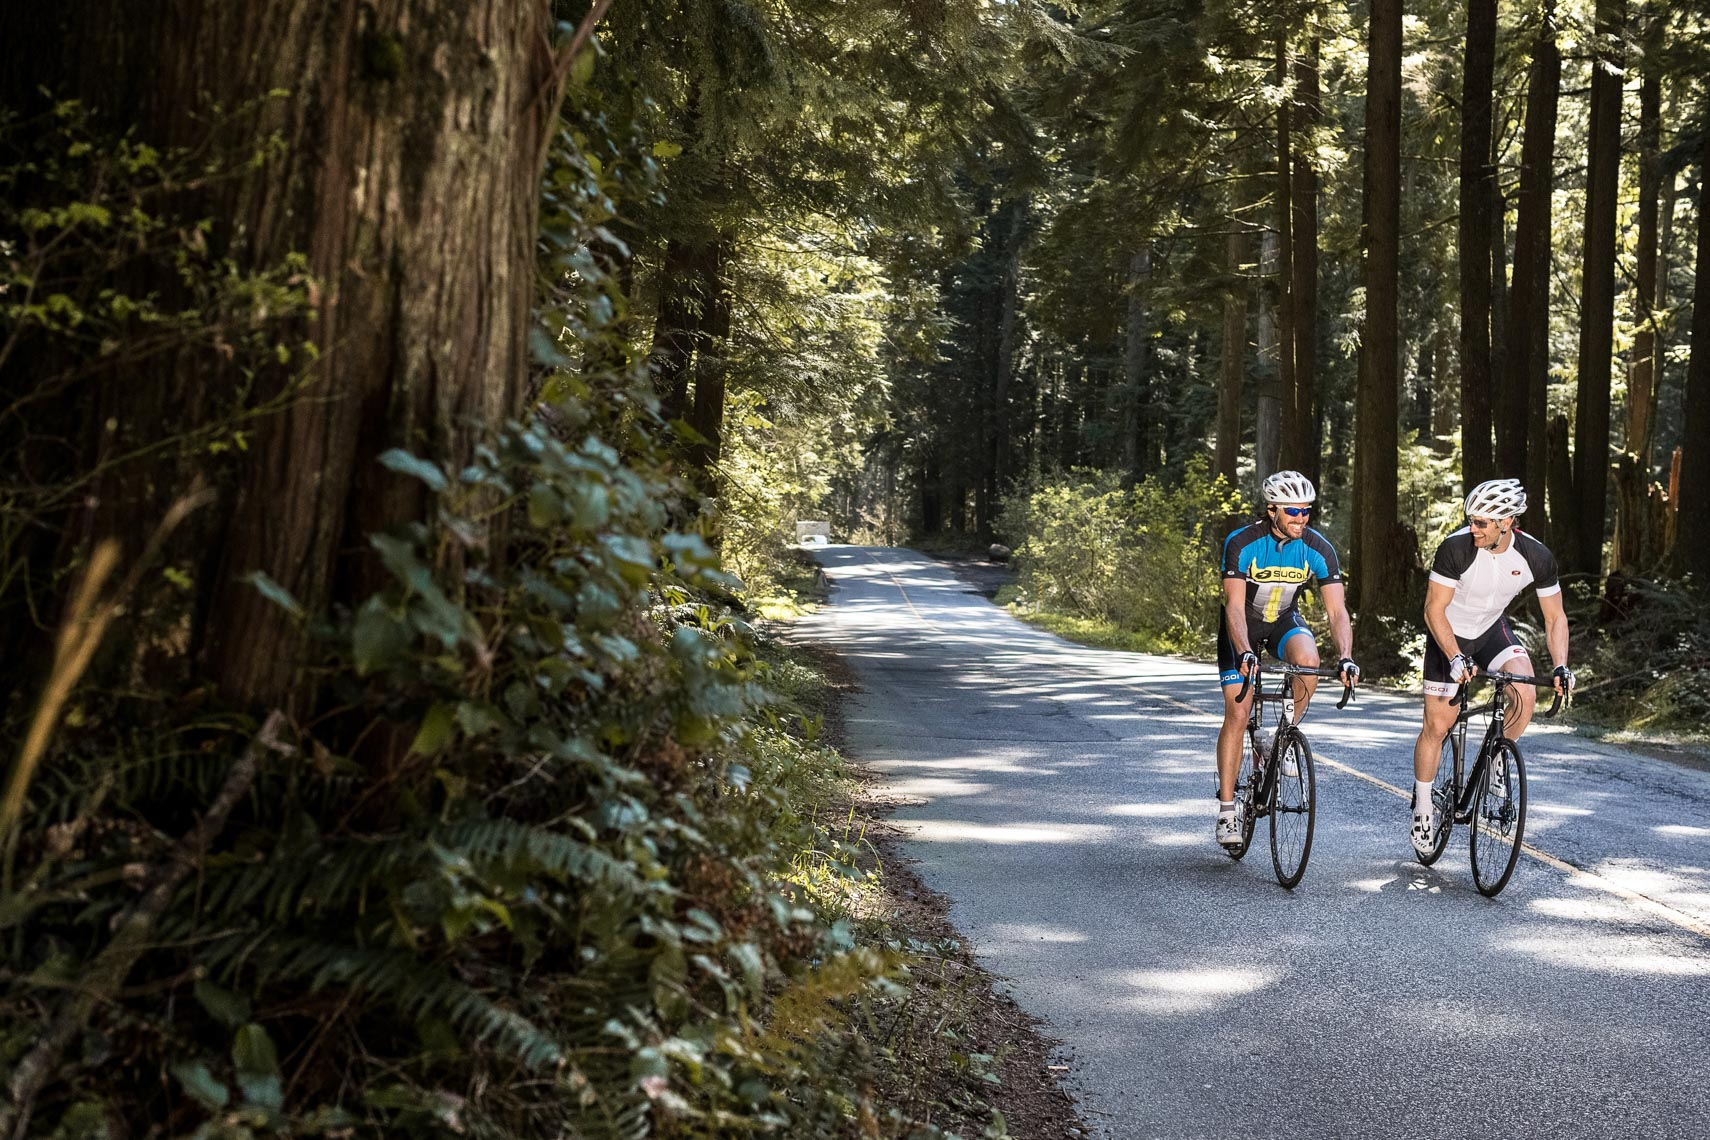 Two road cyclists in the forest of North Vancouver